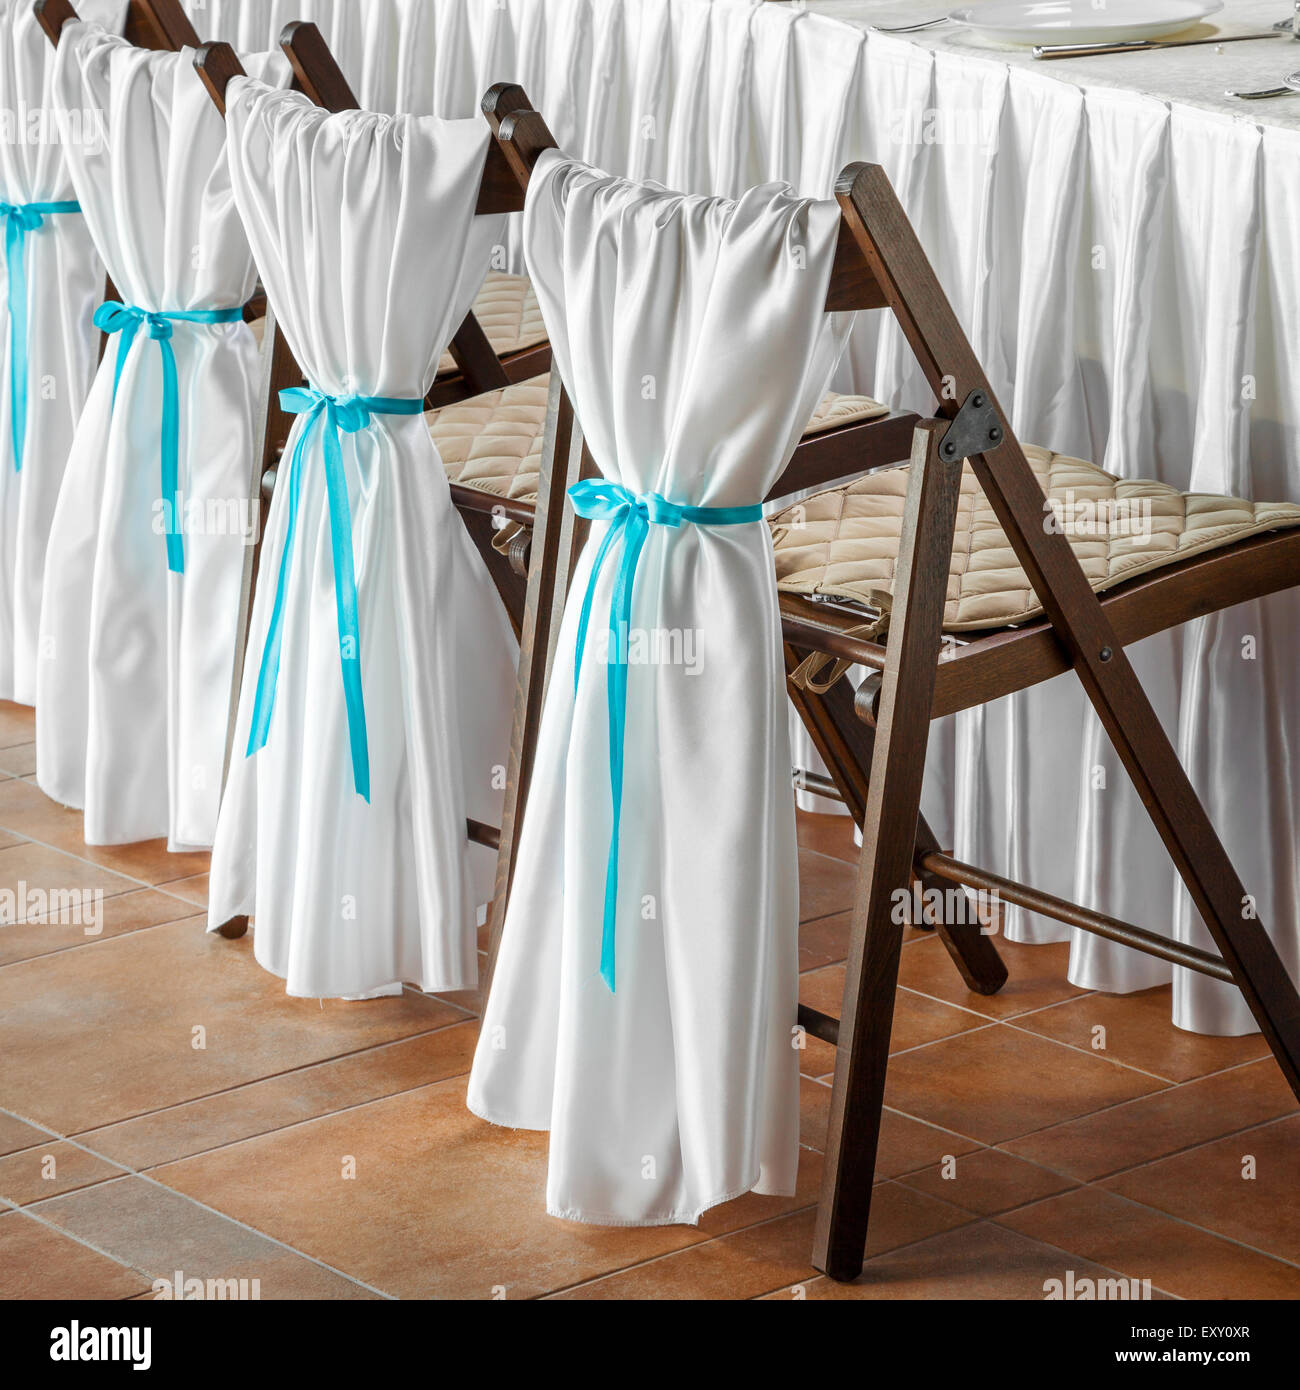 Row Of Wedding Chairs, Decorated With White Fabric And Blue Ribbons